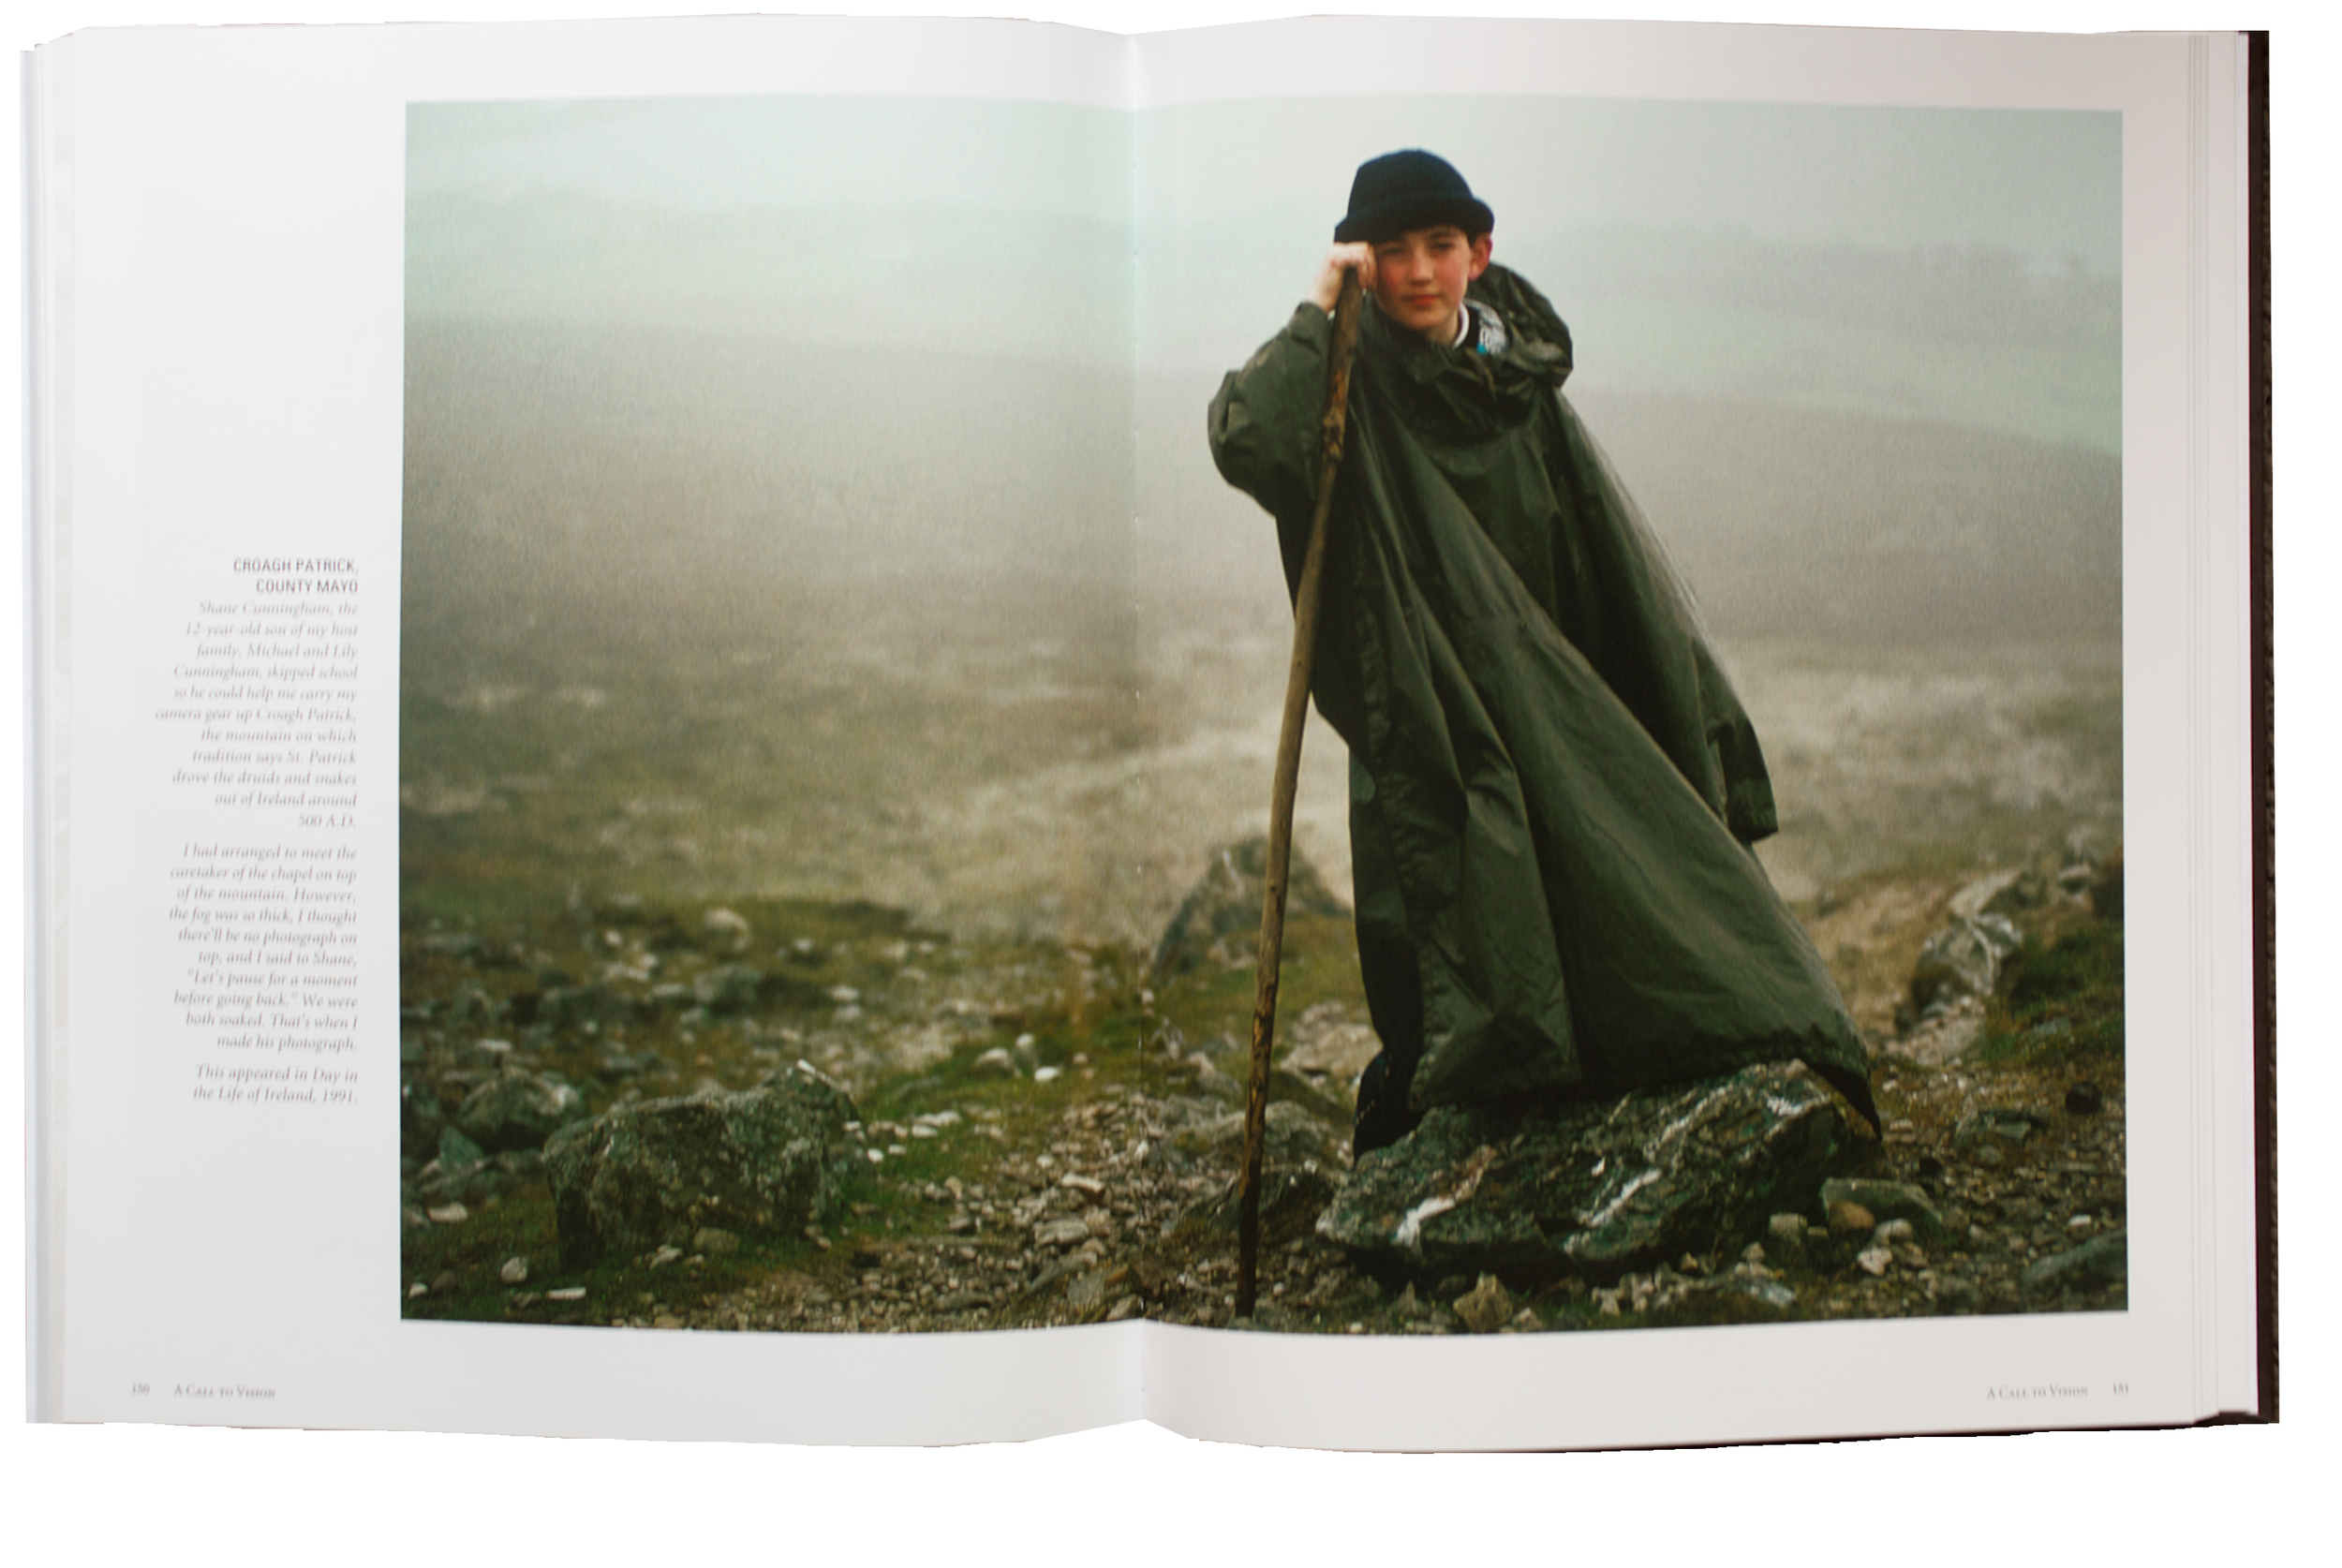 224 pages of stunning full color and black & white images